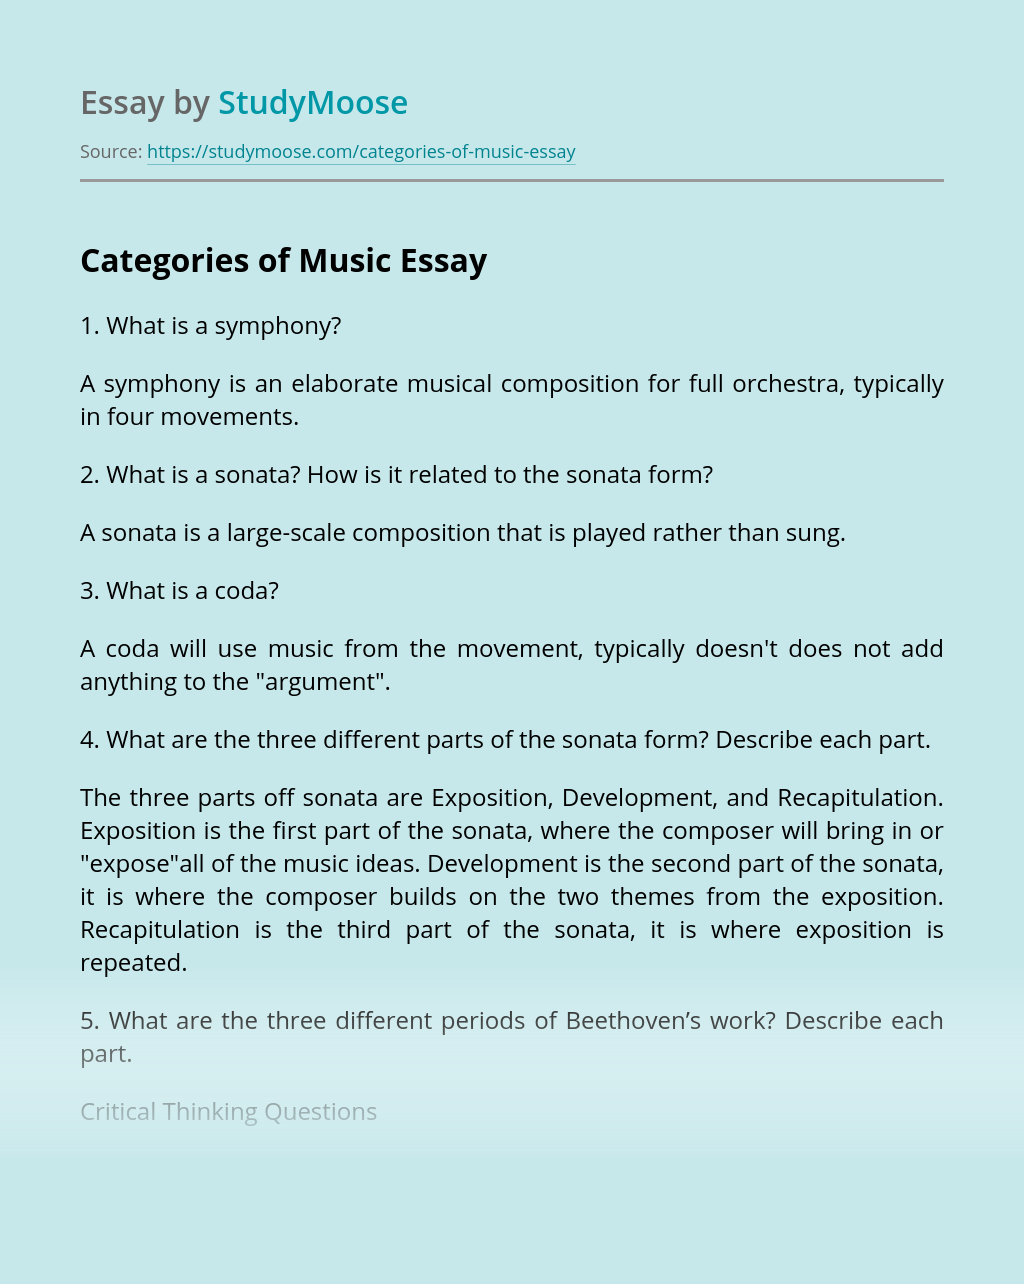 Categories of Music